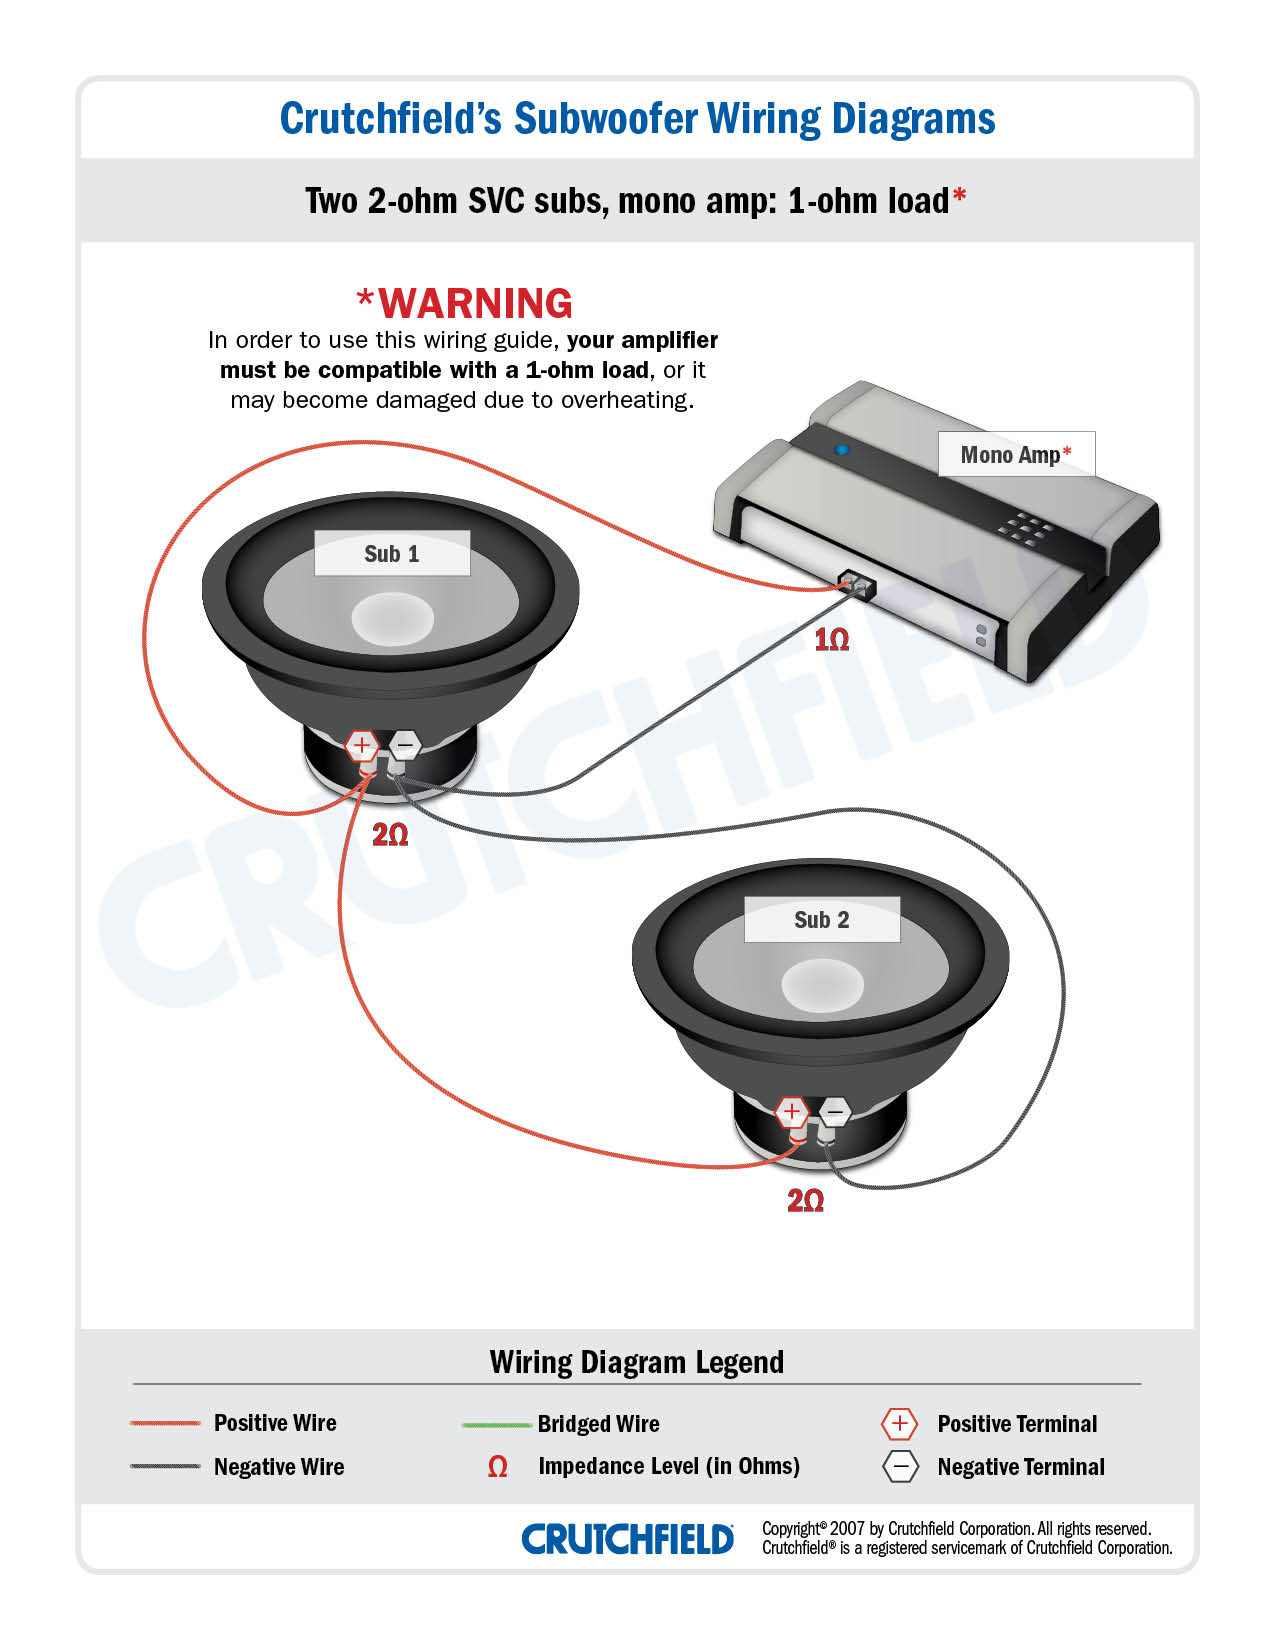 Subwoofer Wiring Diagrams How To Wire Your Subs Guide